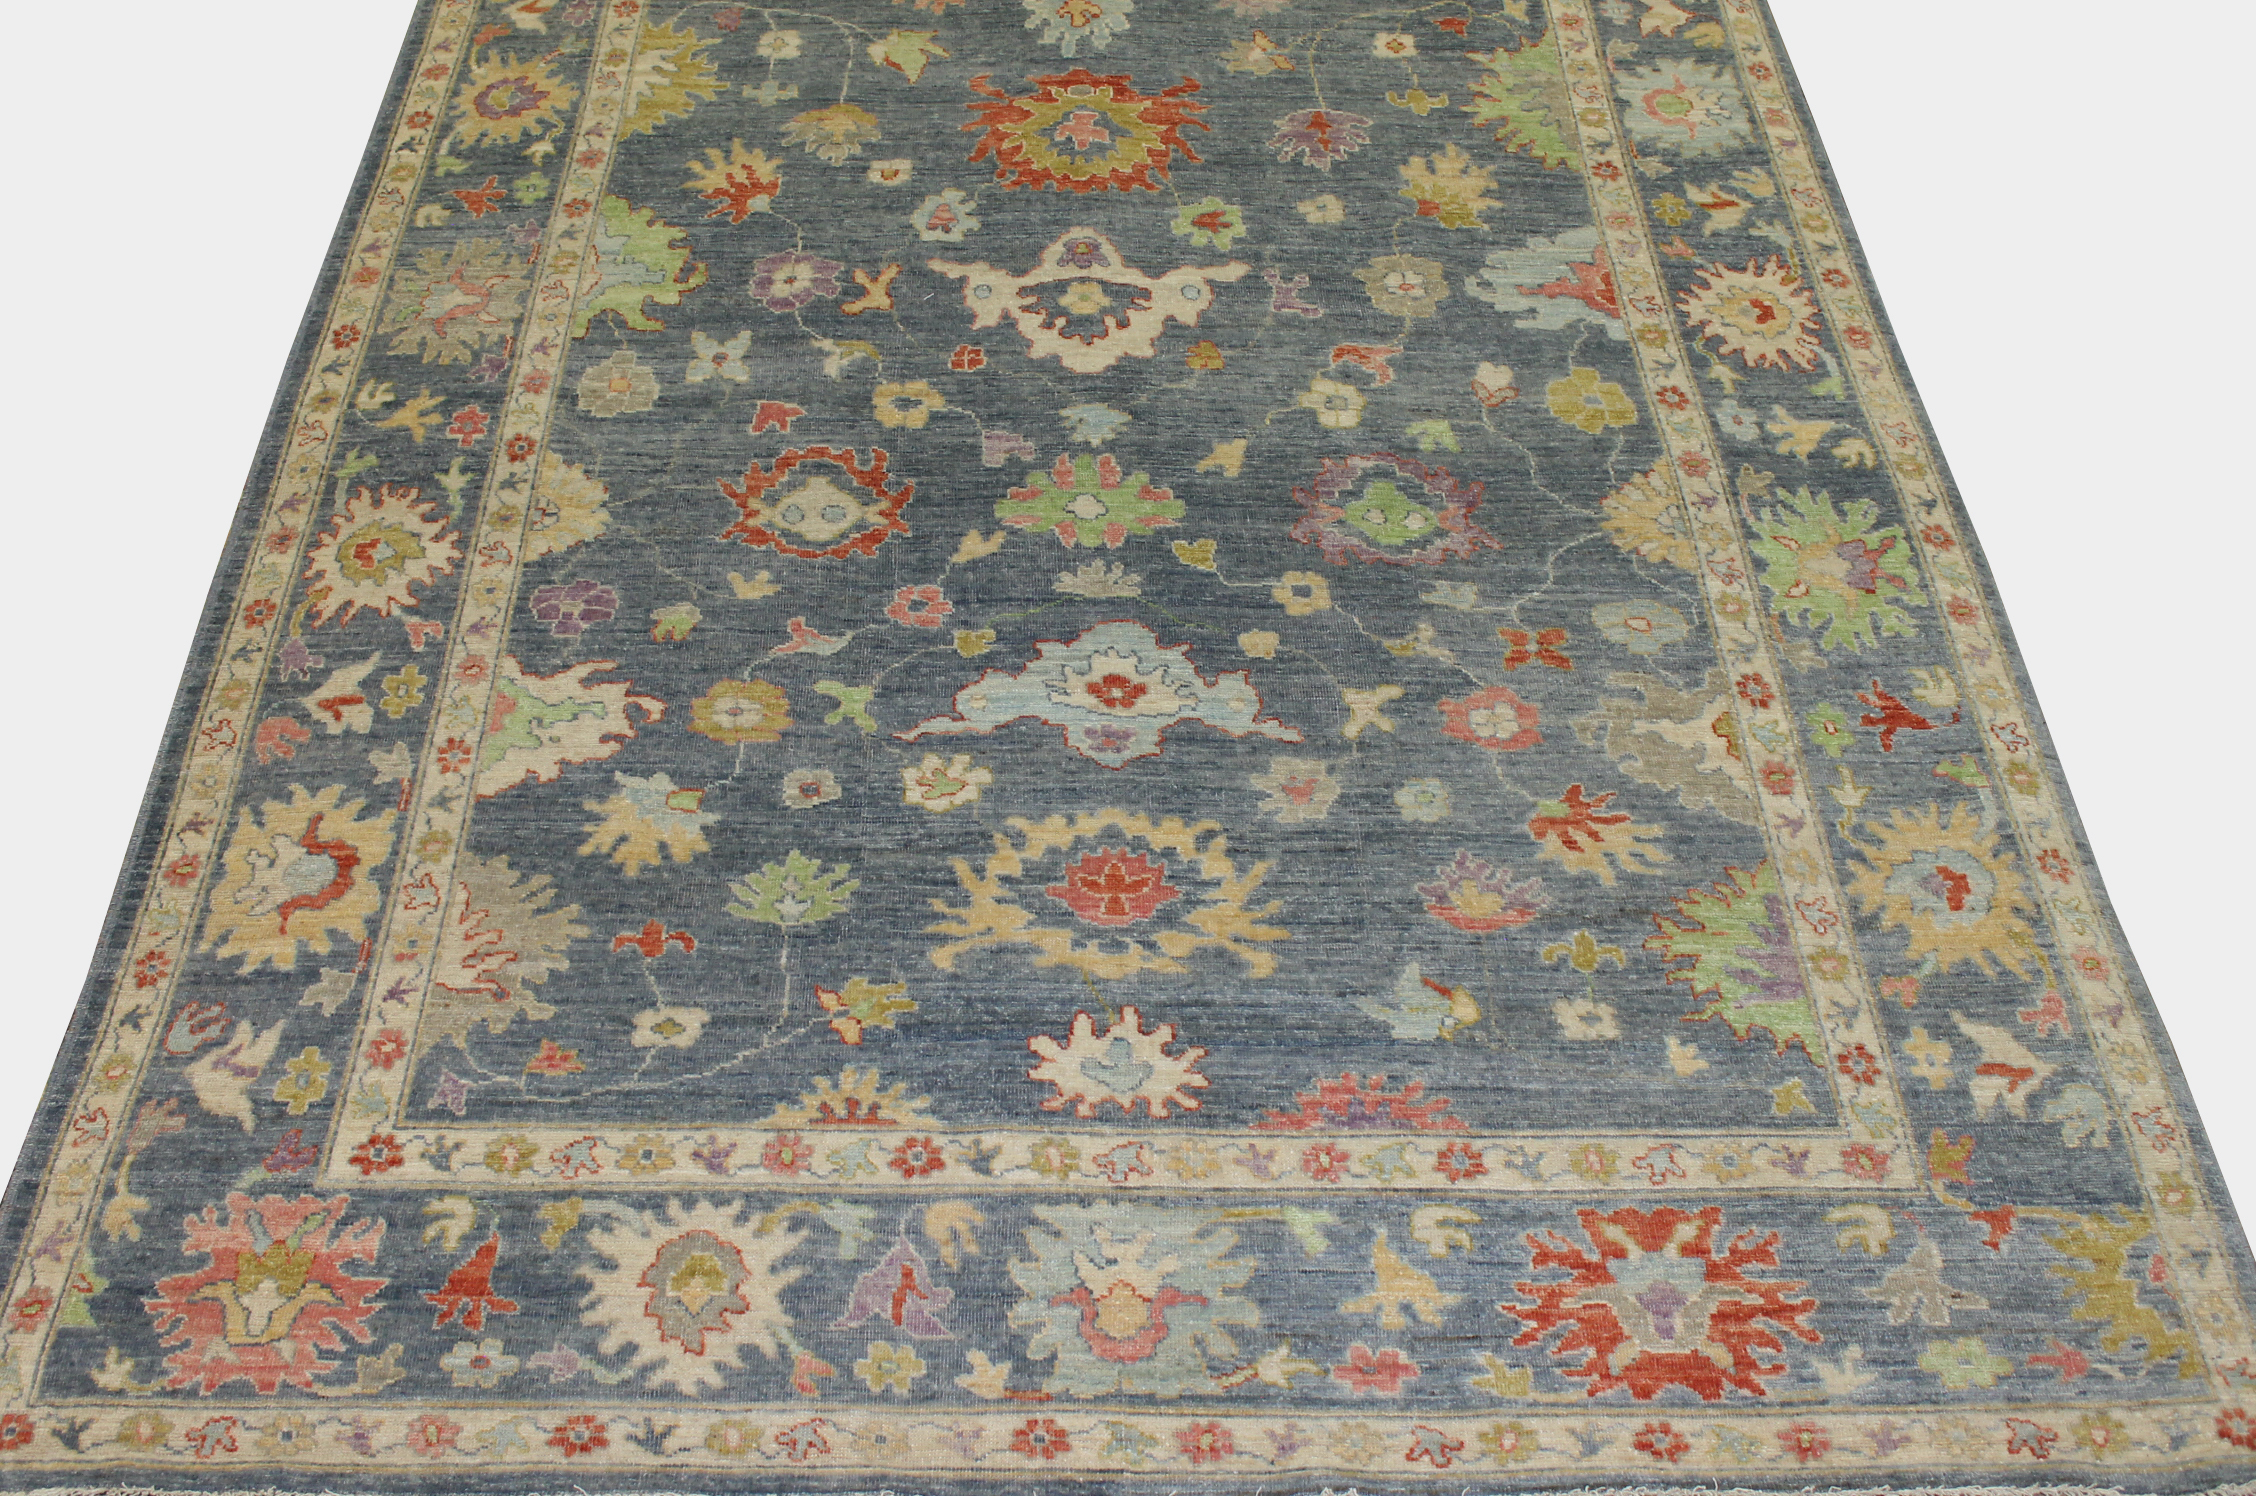 9x12 Oushak Hand Knotted Wool Area Rug - MR023702